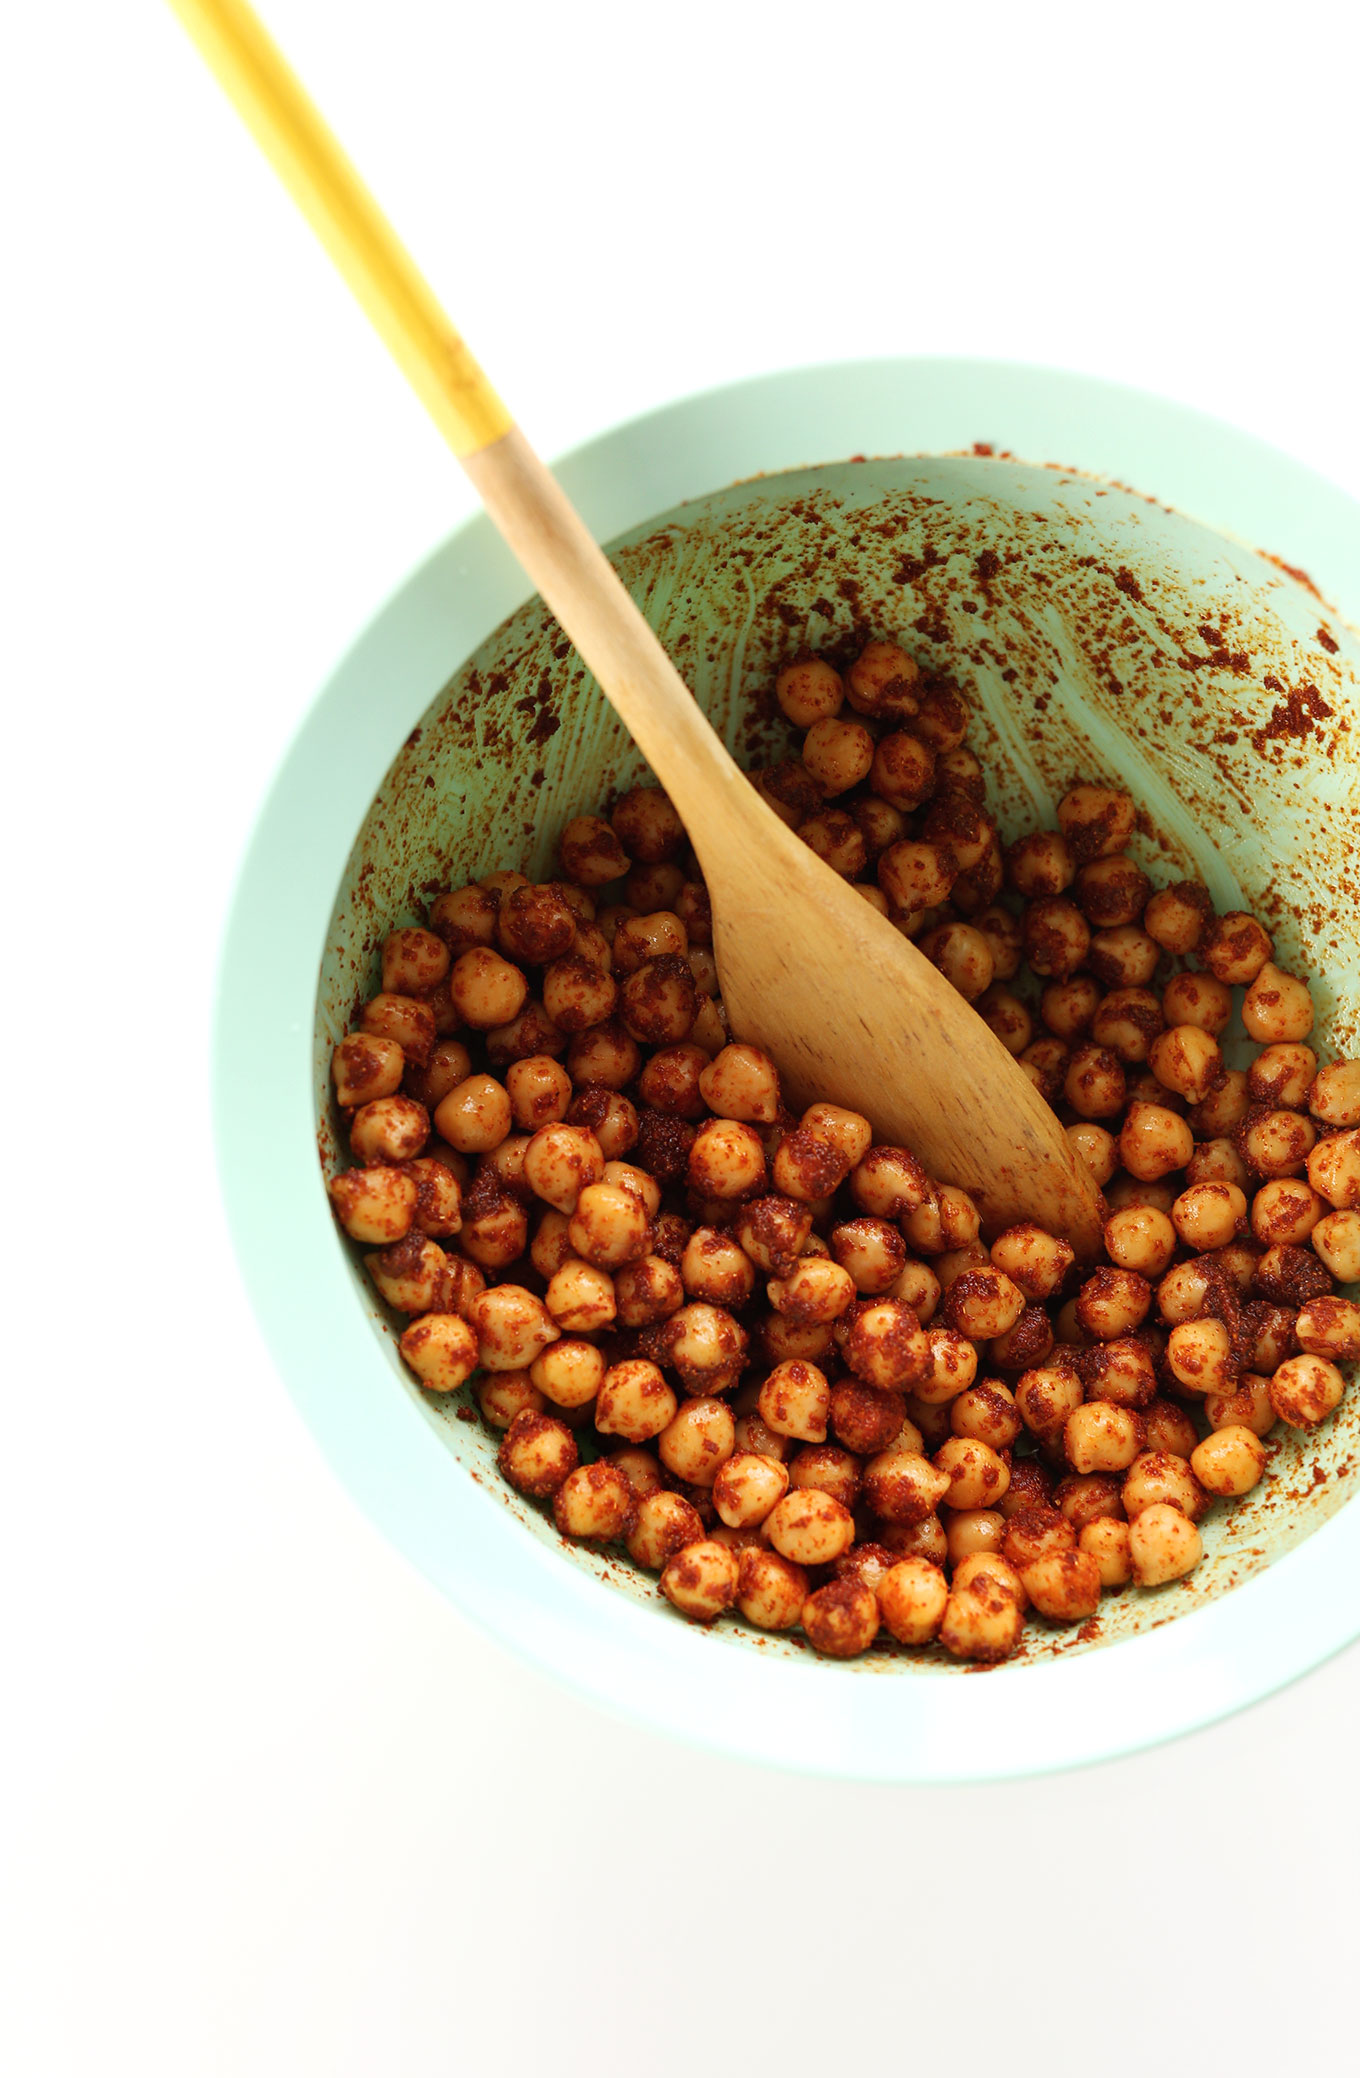 Mixing bowl with spices and chickpeas for adding protein to our vegan salad